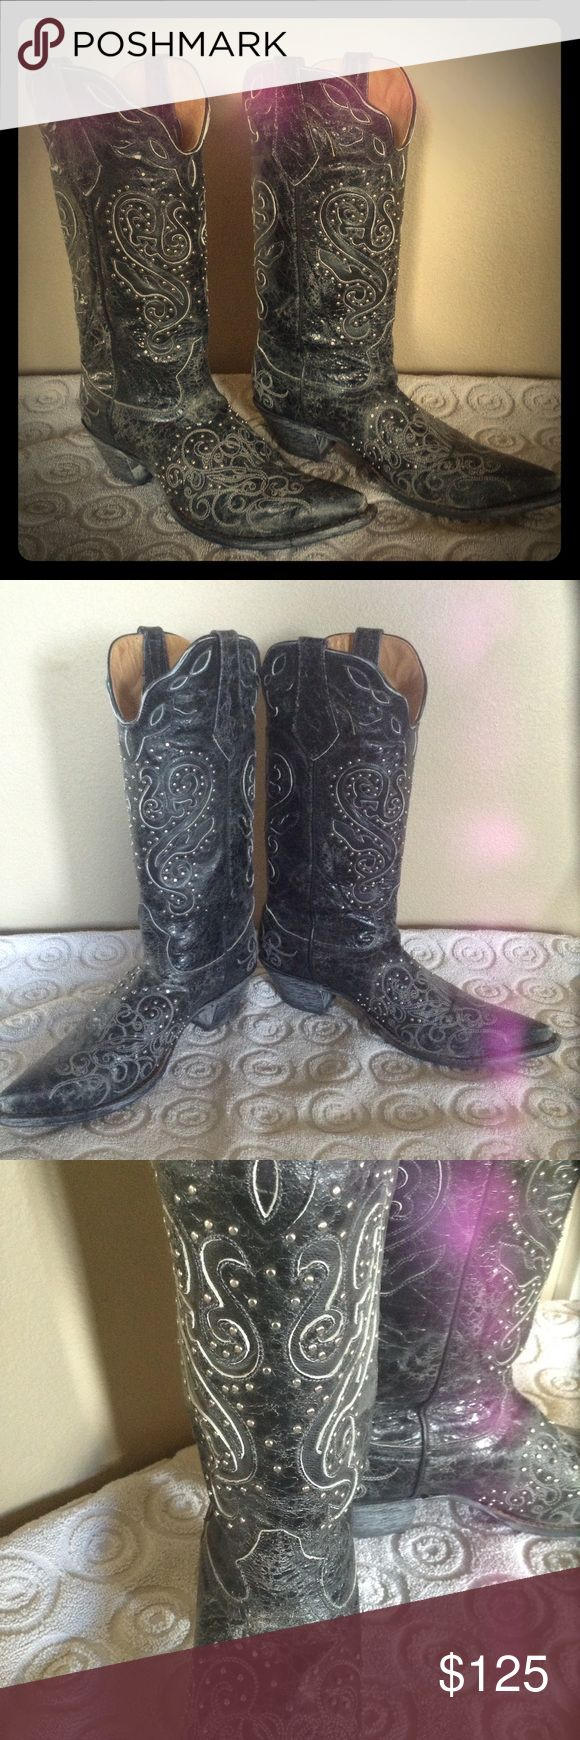 Johnny Ringo Black Crackle Bling Boot Beautiful Johnny Ringo black crackle leather cowboy boots with exceptional detail work featuring silver bling. Johnny Ringo Shoes Heeled Boots